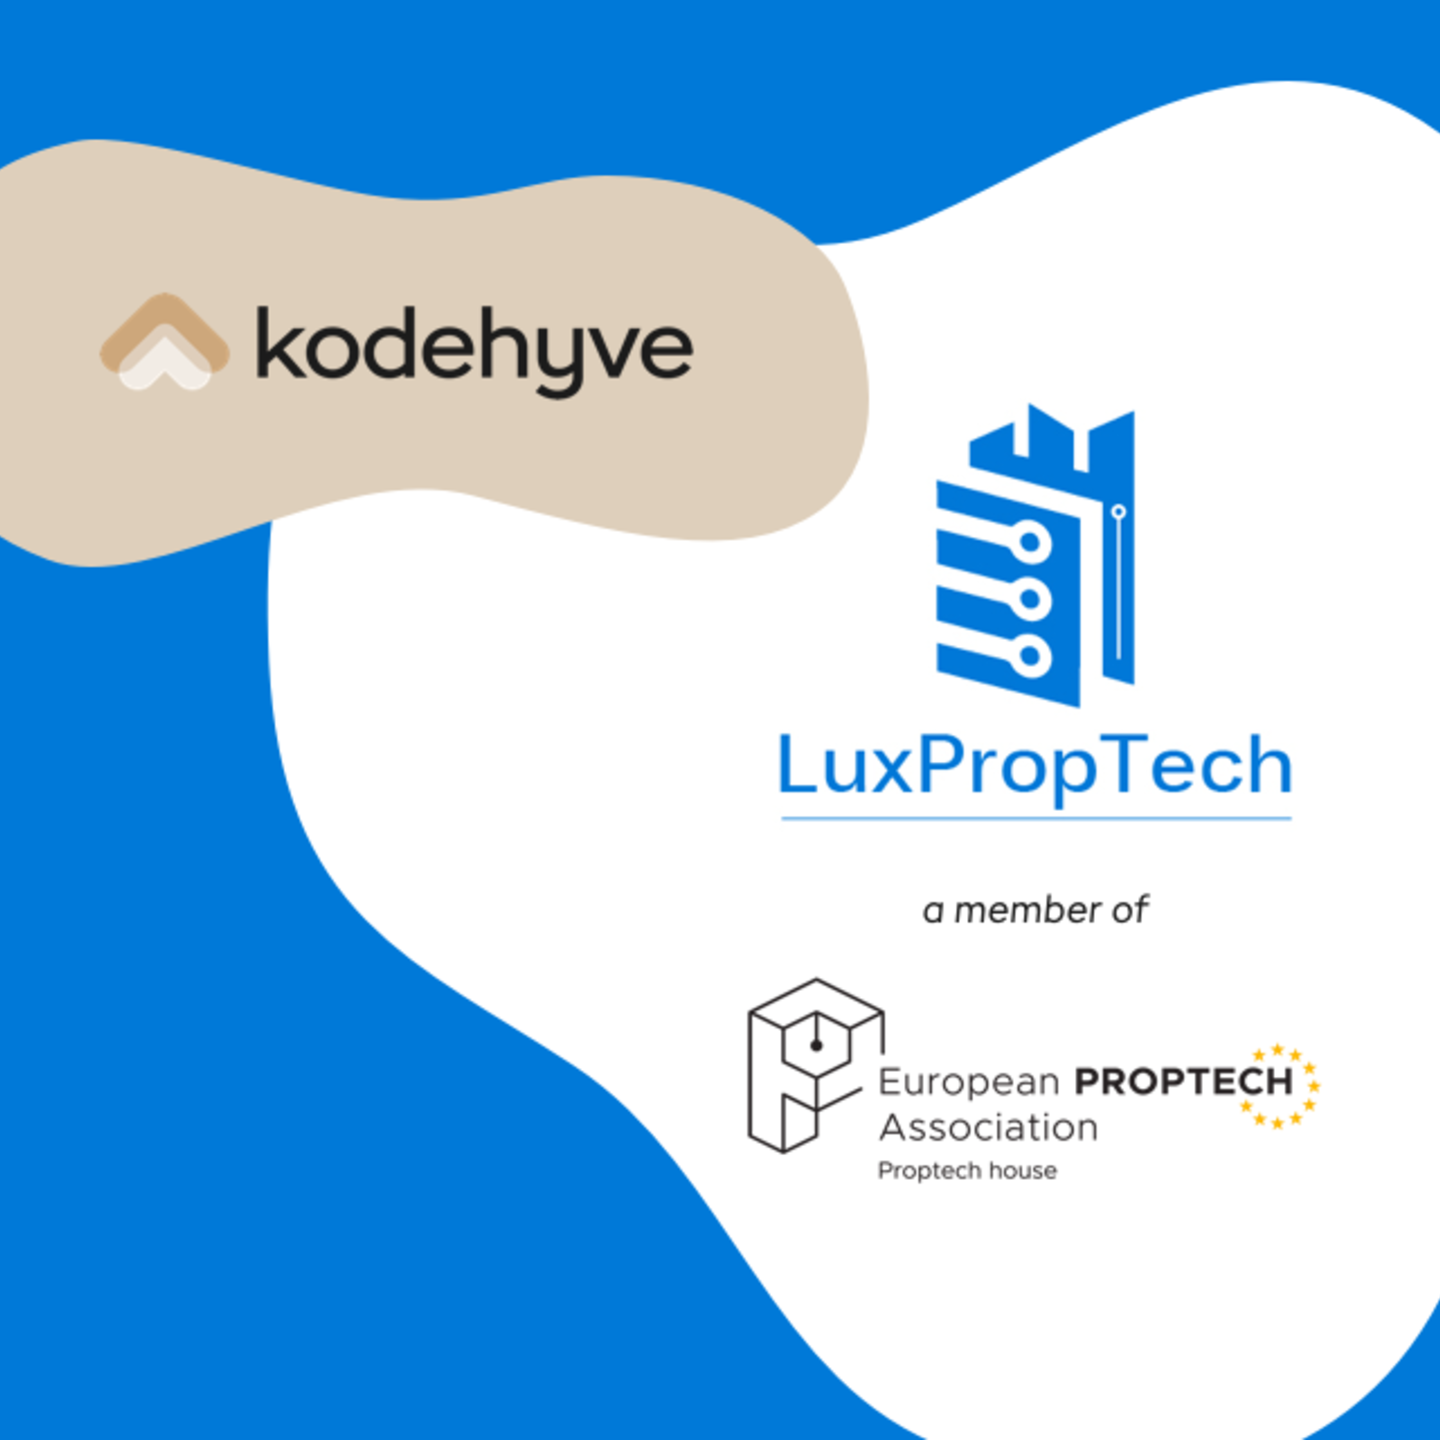 kodehyve joins LuxPropTech